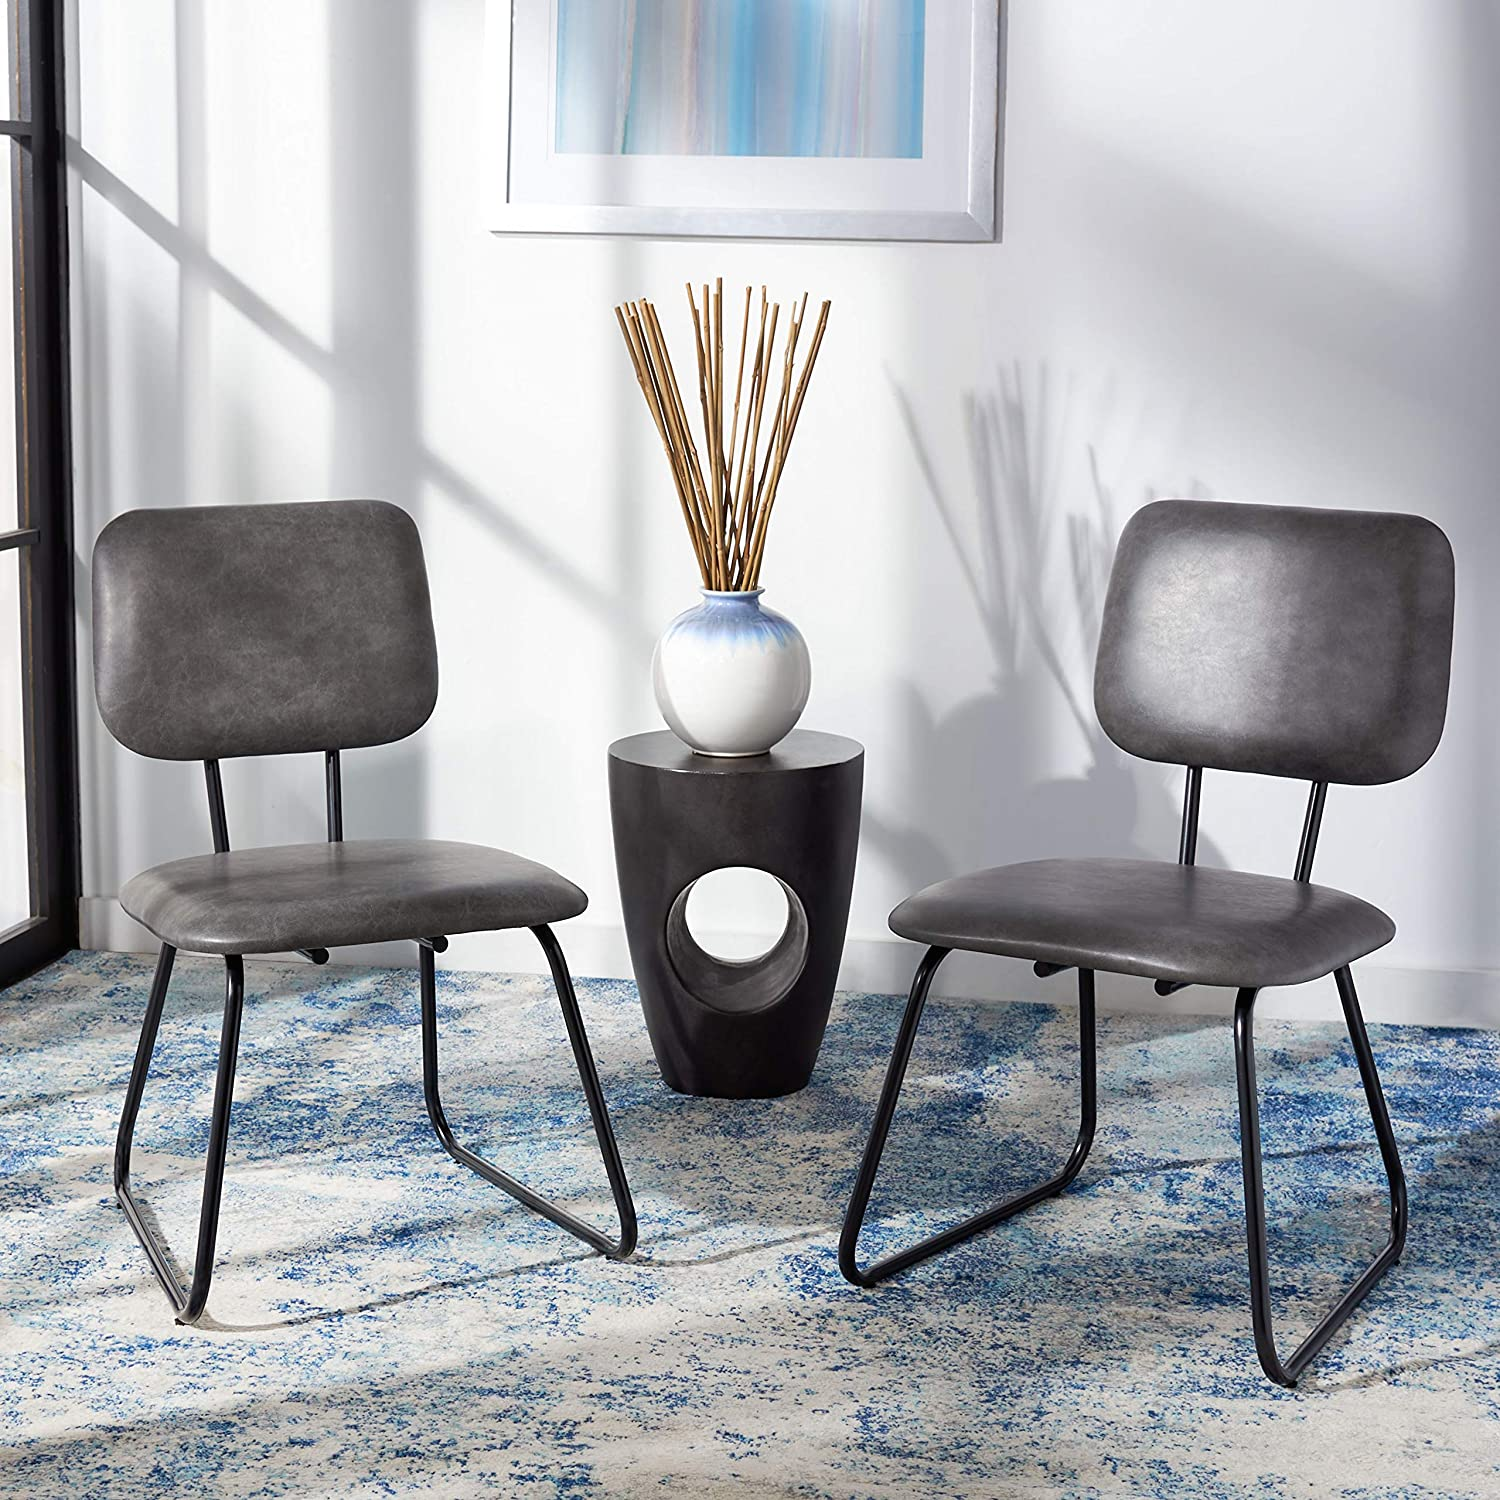 Safavieh Home Collection Chavelle Modern Faux Leather Side Chair (Set of 2) ACH6205F-SET2, Grey/Black